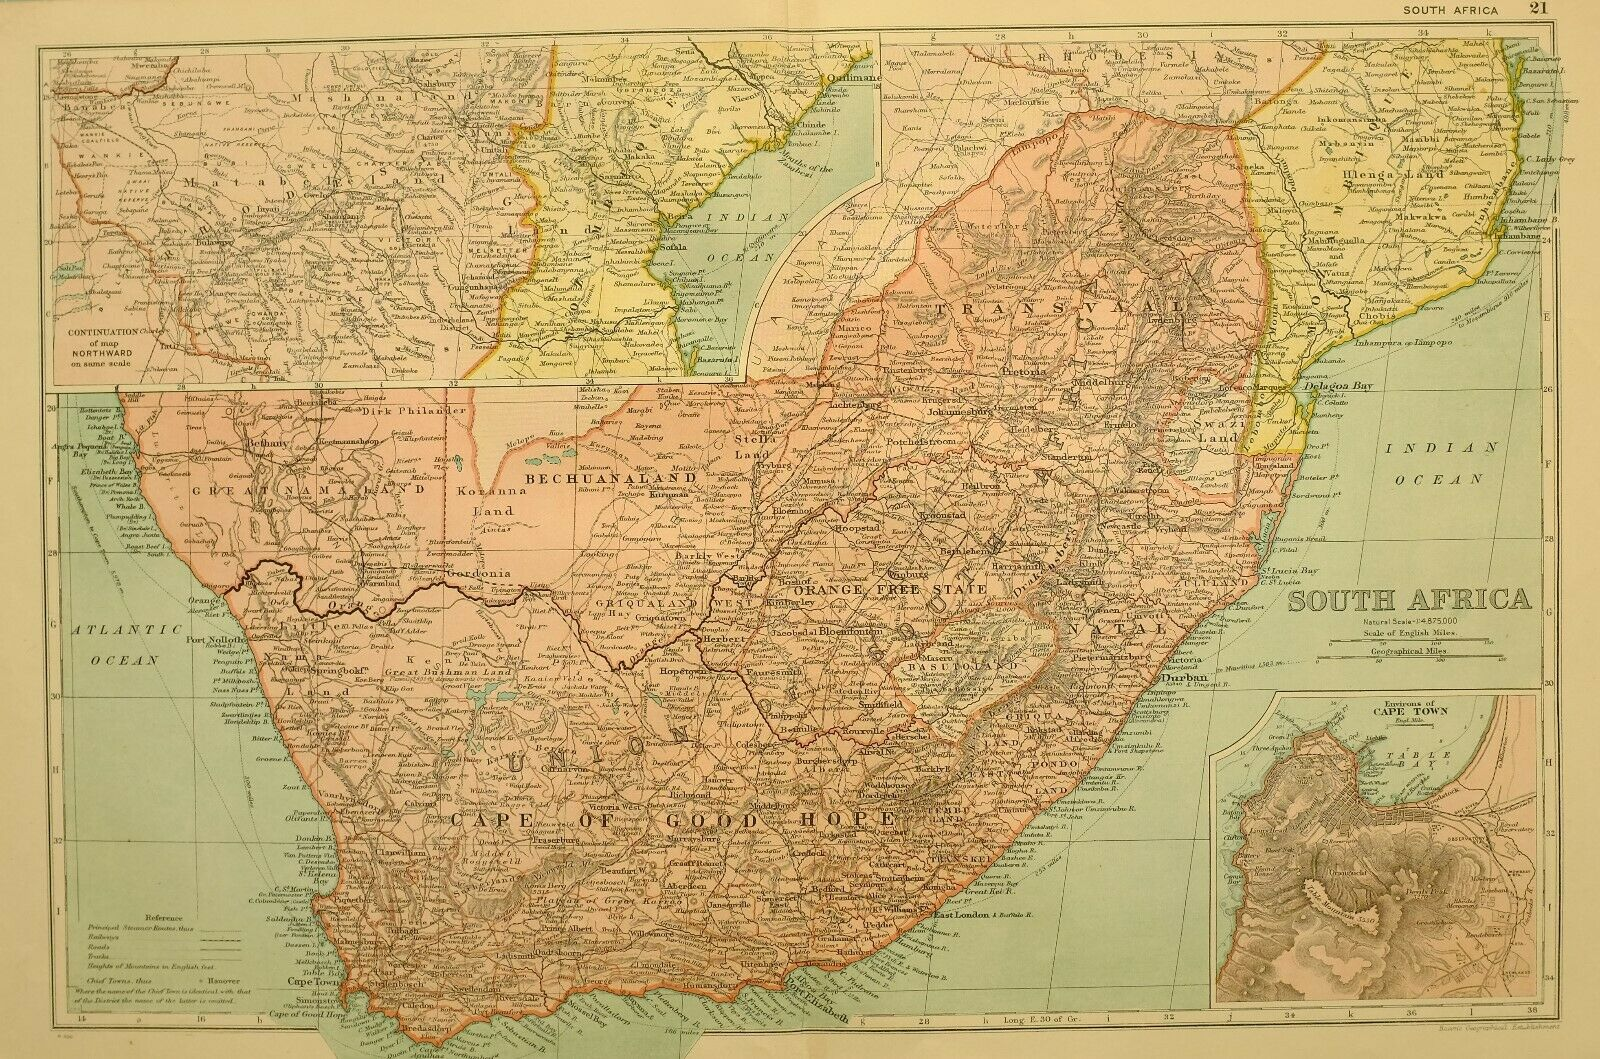 1922 MAP SOUTH AFRICA CAPE OF GOOD HOPE GREAT NAMALAND BECHUANLAND NATAL